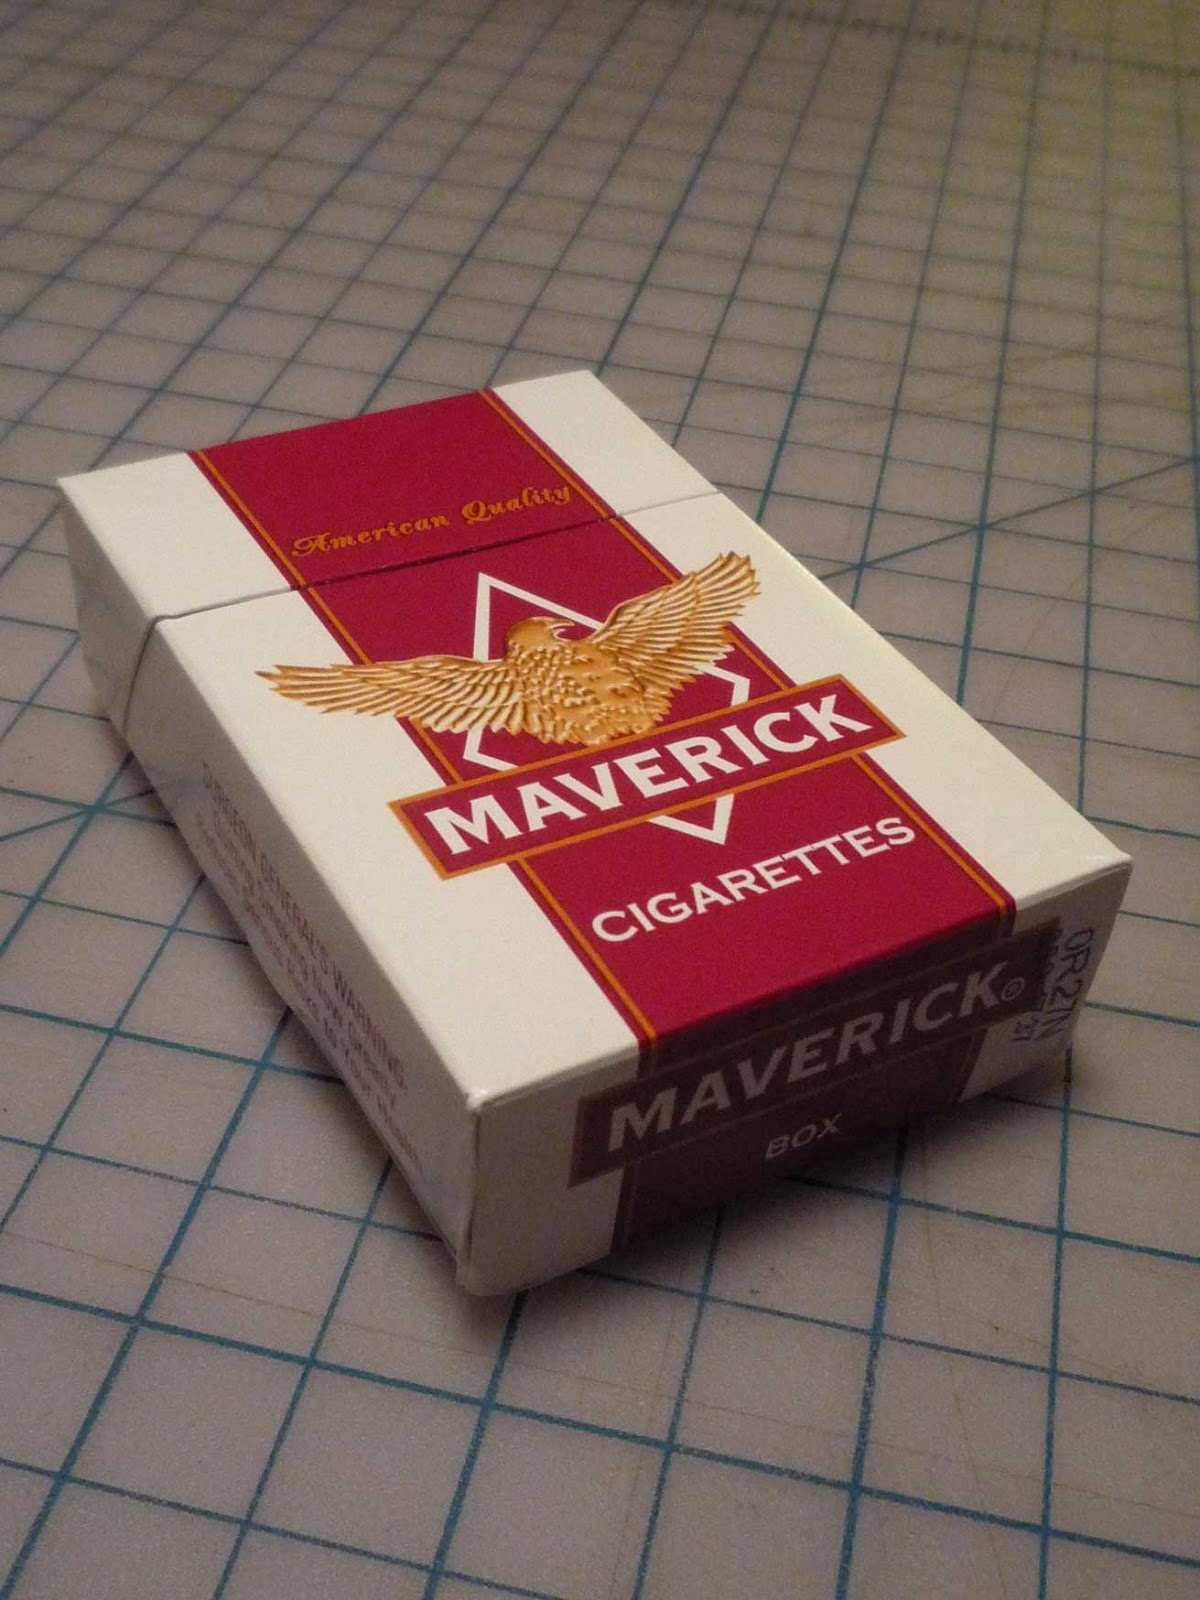 image regarding Camel Coupons Printable named Printable Cigarette Discount codes 2015 - Cost-free Camel, Marlboro, United states